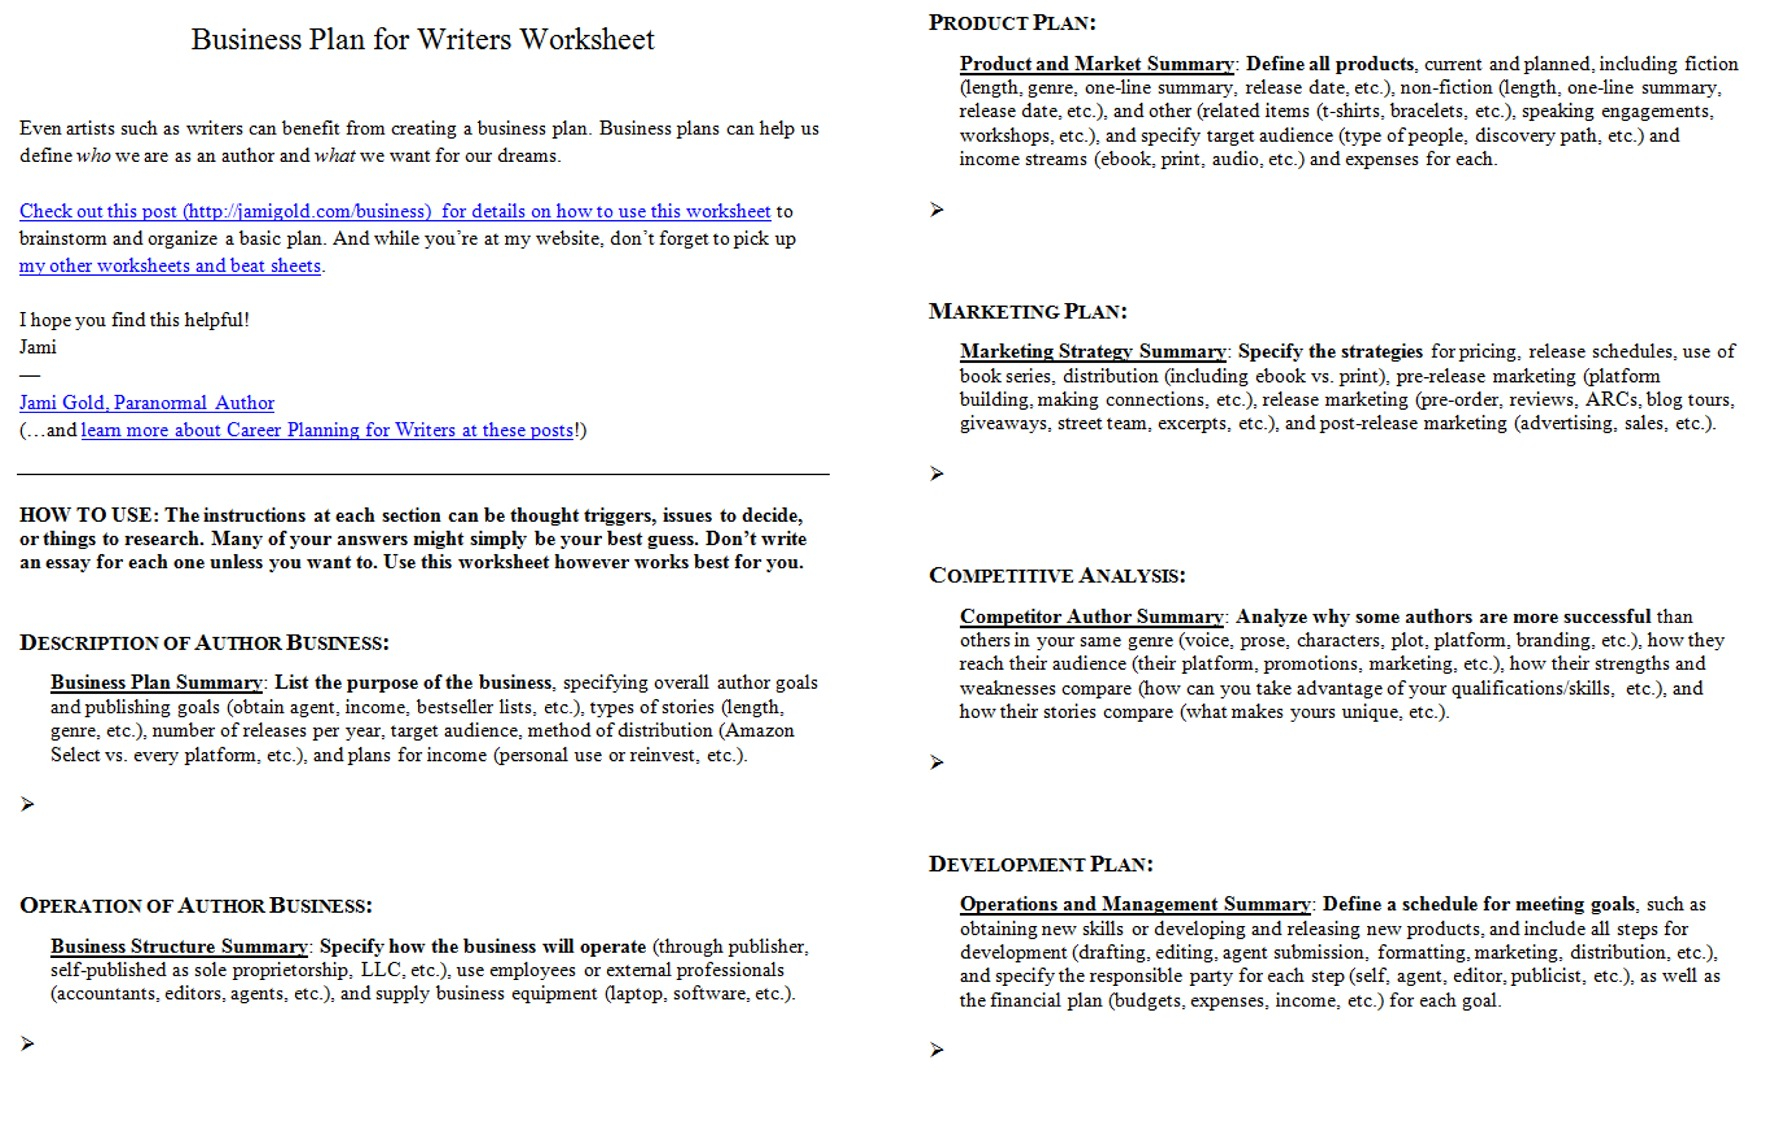 Weirdmailus  Fascinating Worksheets For Writers  Jami Gold Paranormal Author With Lovable Screen Shot Of Both Pages Of The Business Plan For Writers Worksheet With Charming Role Play Worksheets Also Missing Addends Worksheet First Grade In Addition Free Treble Clef Worksheets And Ordinal Numbers  Worksheets As Well As Gcse Maths Worksheets Additionally Newton Third Law Worksheet From Jamigoldcom With Weirdmailus  Lovable Worksheets For Writers  Jami Gold Paranormal Author With Charming Screen Shot Of Both Pages Of The Business Plan For Writers Worksheet And Fascinating Role Play Worksheets Also Missing Addends Worksheet First Grade In Addition Free Treble Clef Worksheets From Jamigoldcom